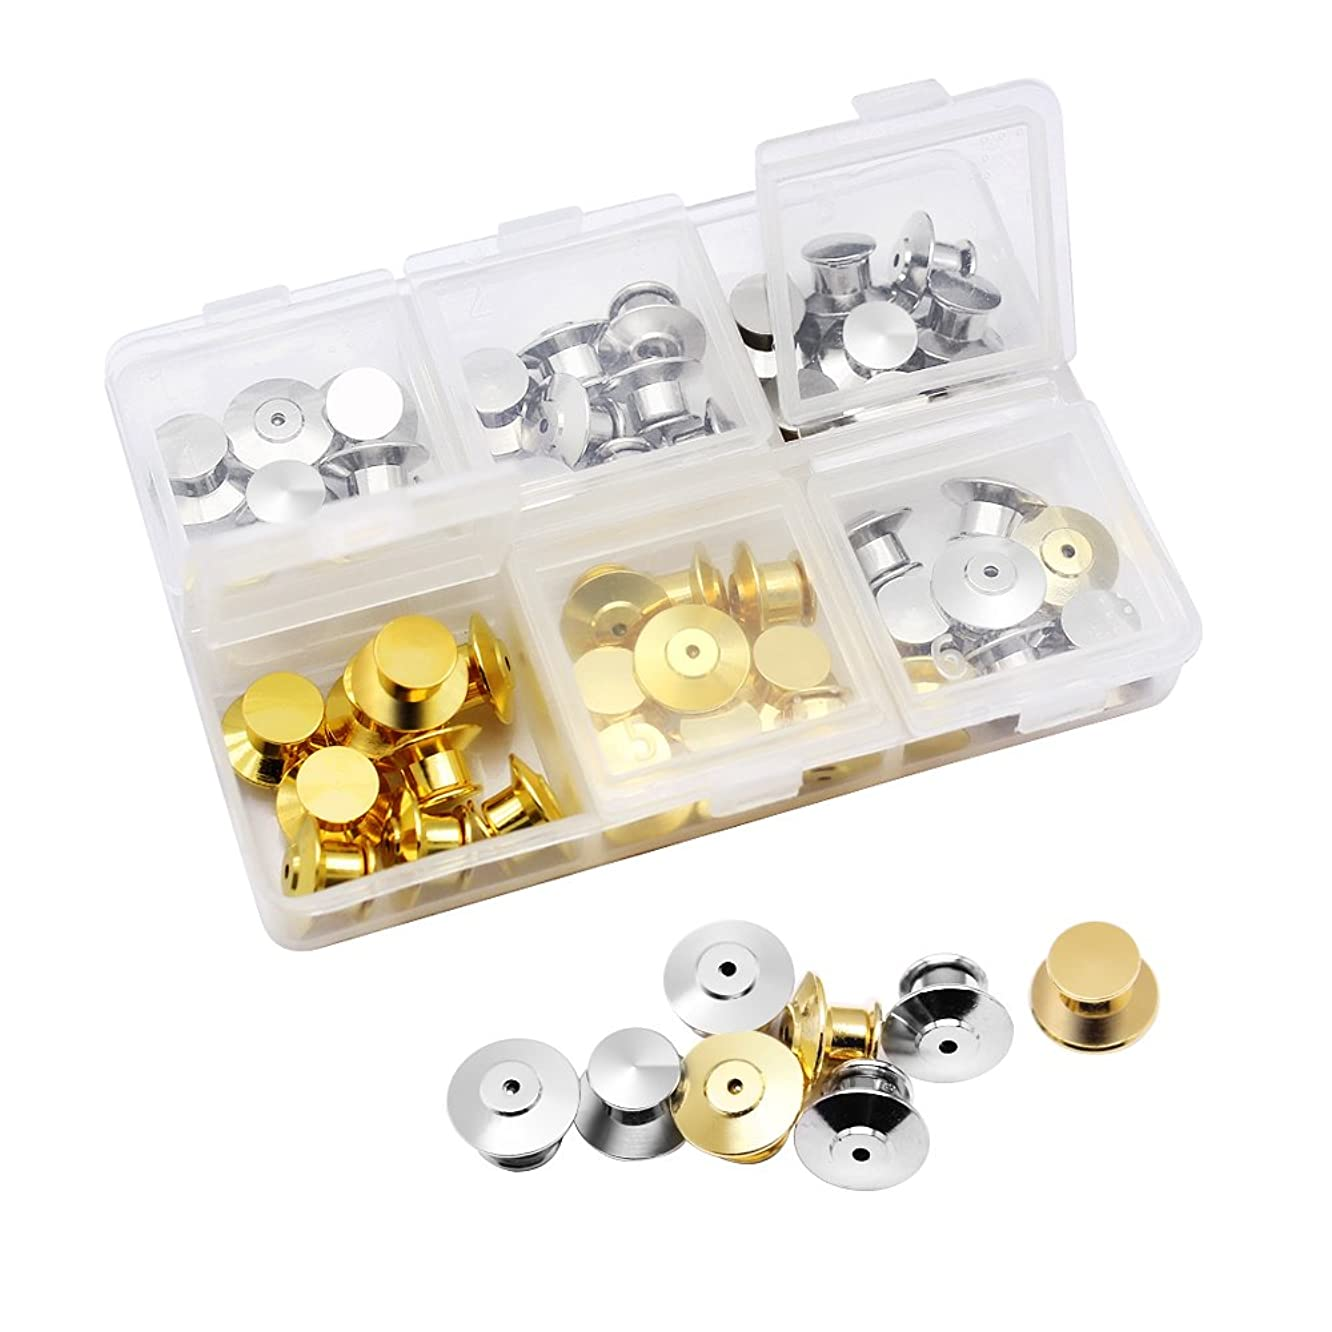 Hysagtek 50 Pcs Metal Locking Pin Backs Keepers Pin Locks Locking Clasp Replacement with Storage Case for Craft Making - No Tool Required, Silver and Golden